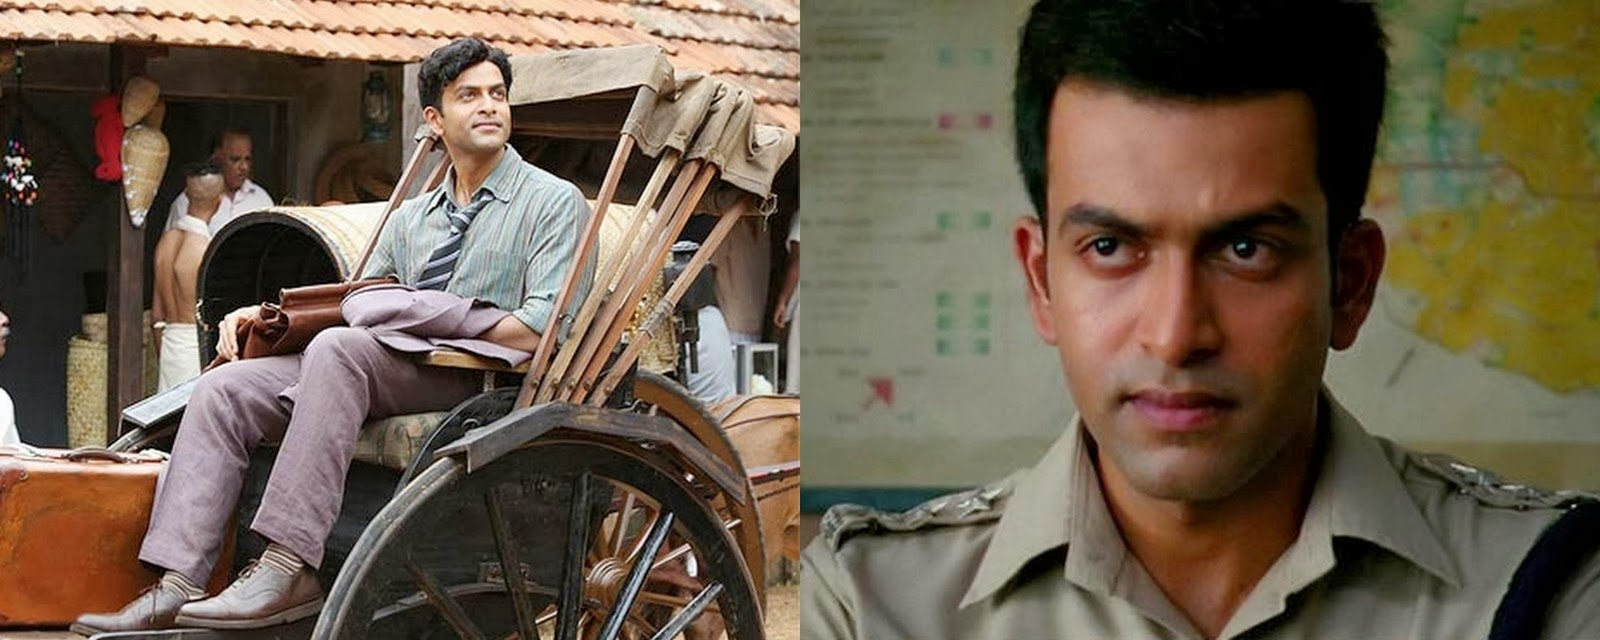 Prithviraj in Celluloid and Aurangzeb in 2013